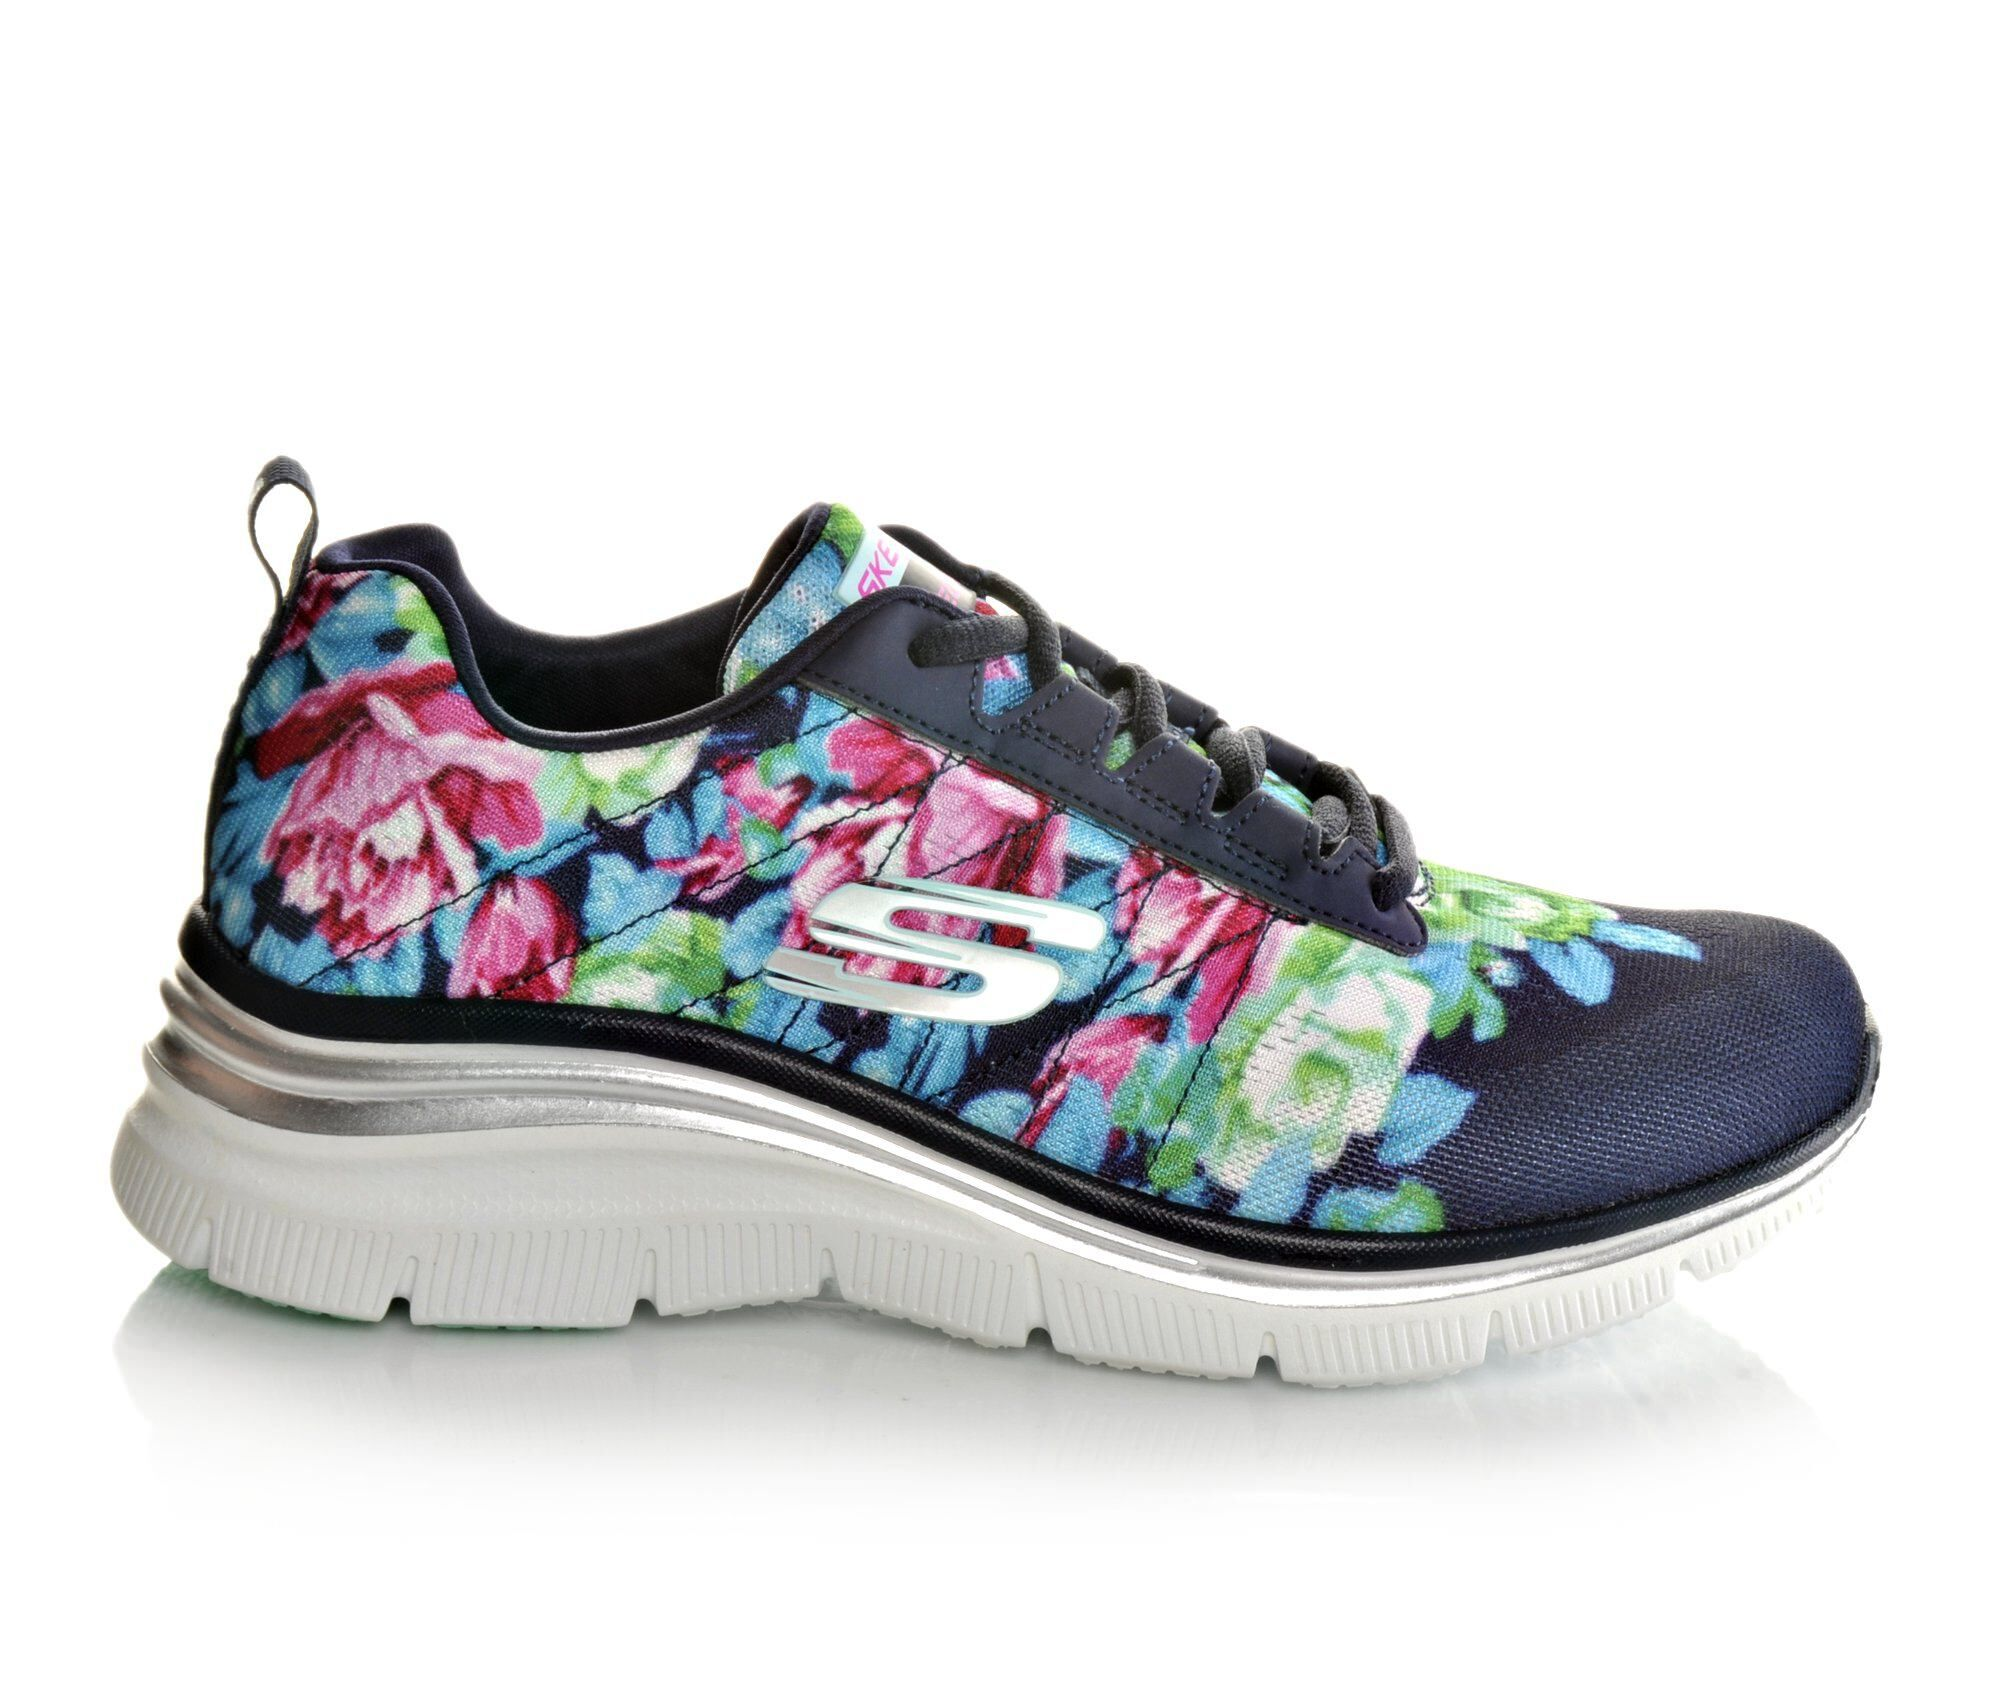 Images. Women's Skechers Fashion Fit 12700 Sneakers